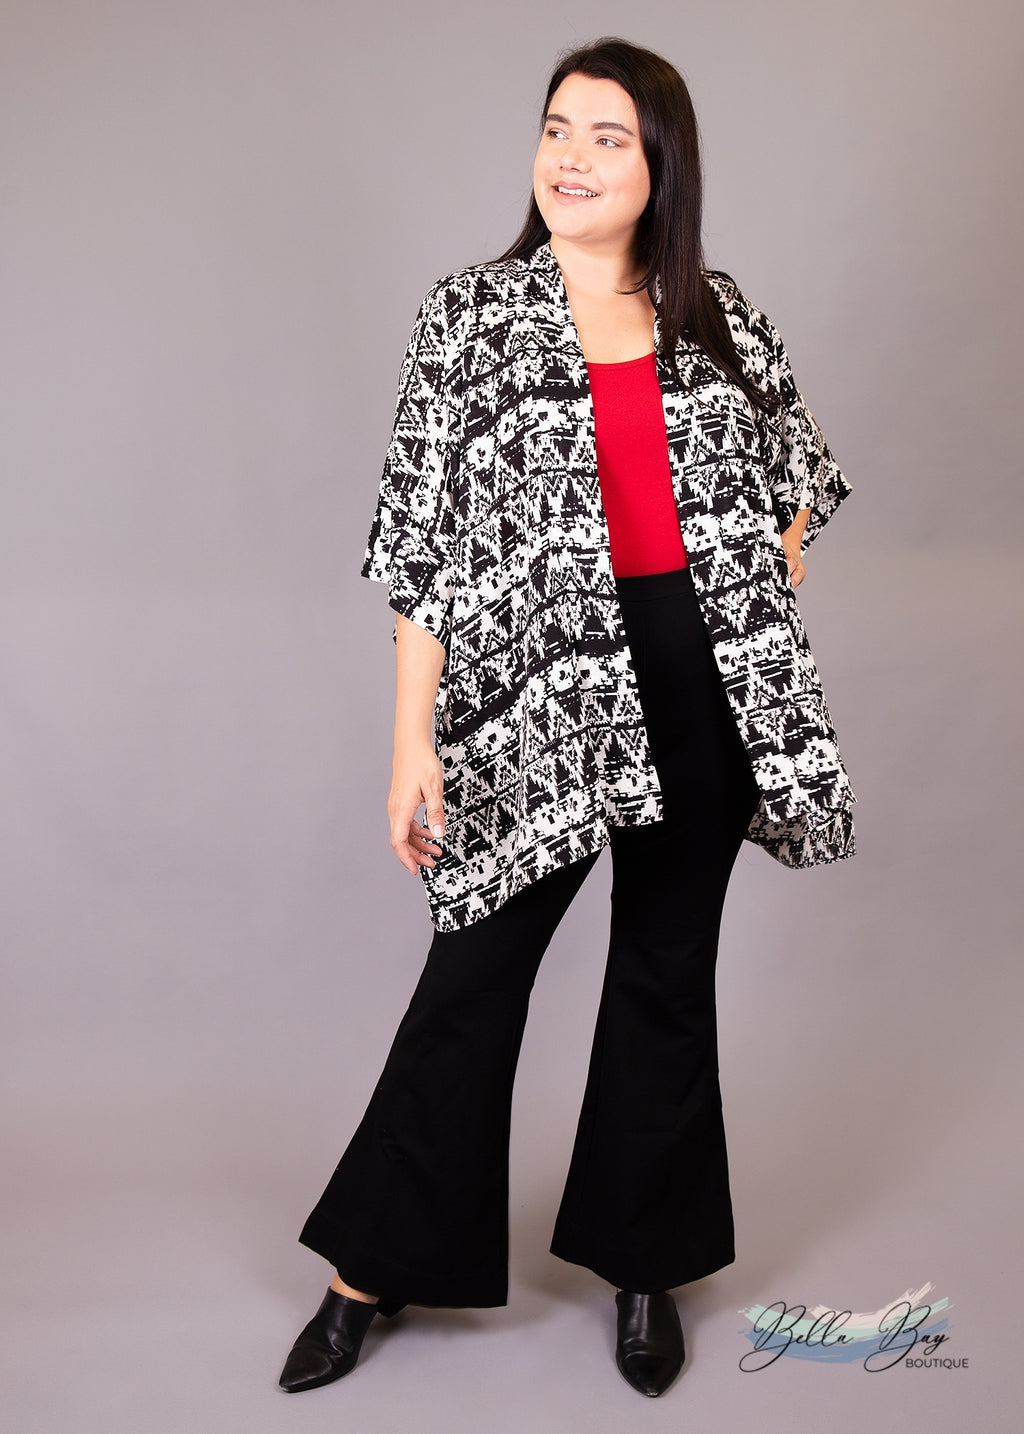 Paisley Raye Amethyst Kimono- Black and White Geometric (L/XL) - Paisley Raye with Bella Bay Boutique, shop now at  https://shopbellabay.com/ or locally in Newport Oregon